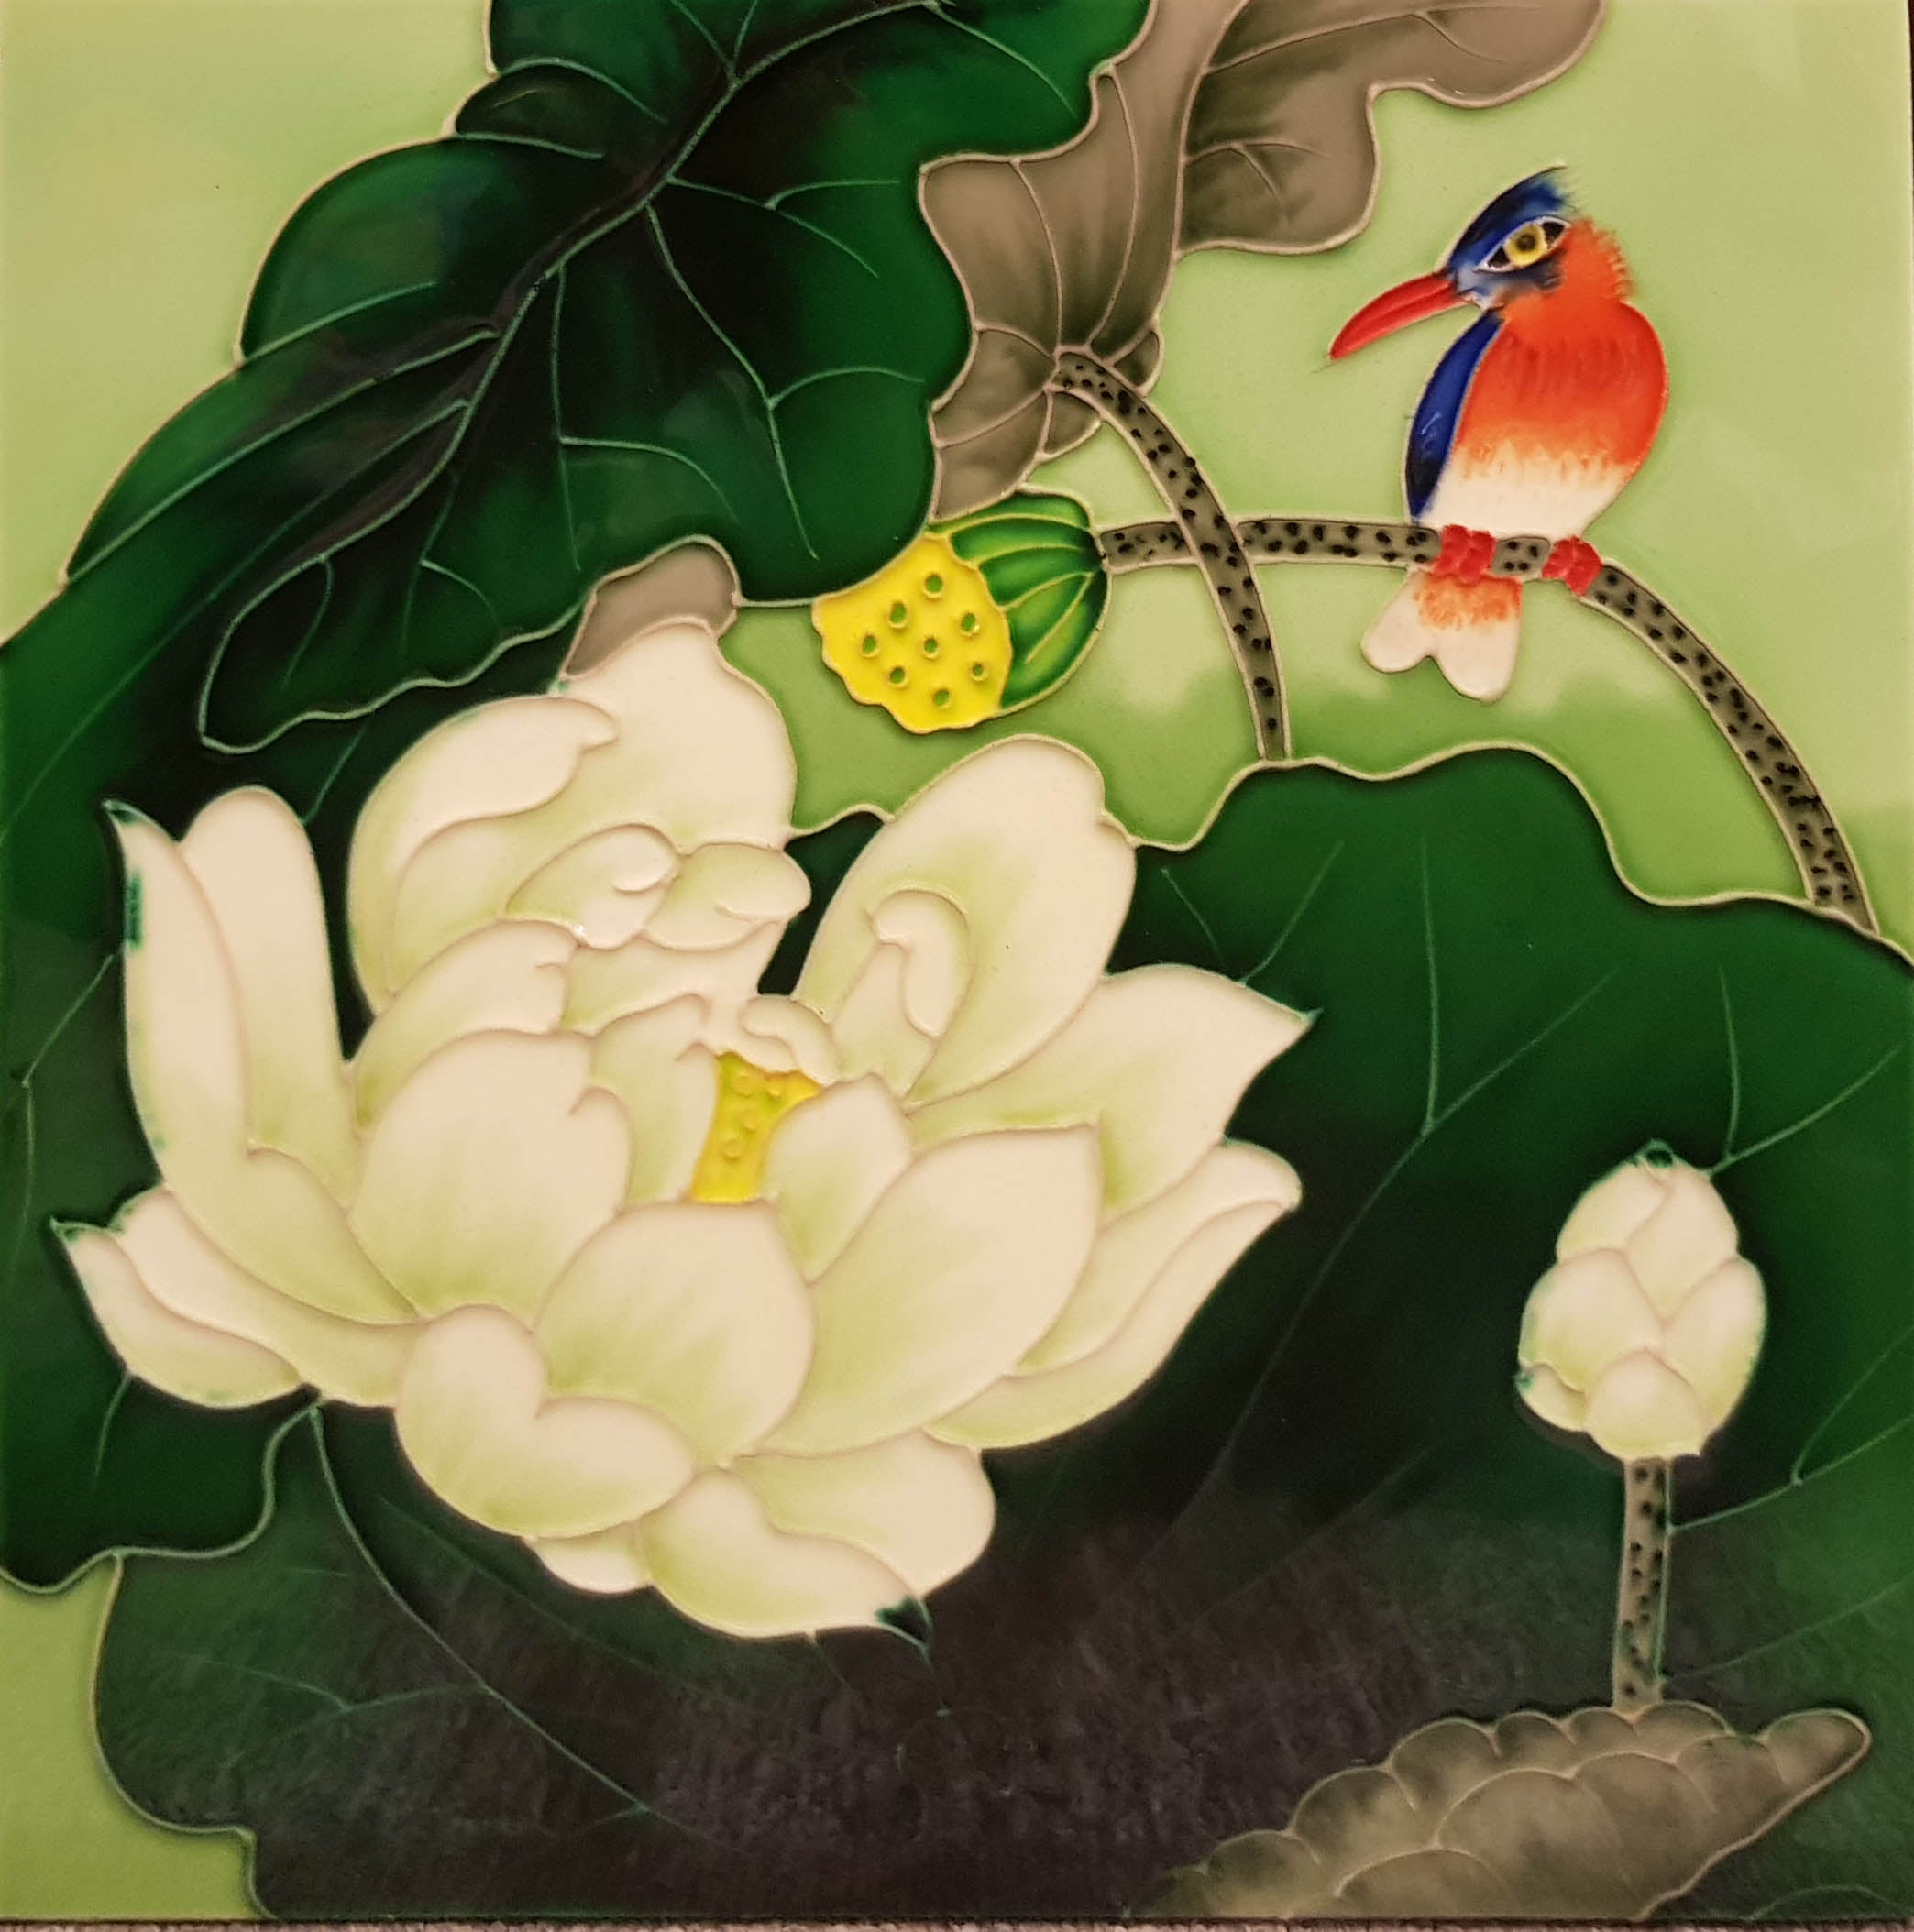 3526 Lotus Flower with Red Bird Green Background 30cm x 30cm Ceramic Tile